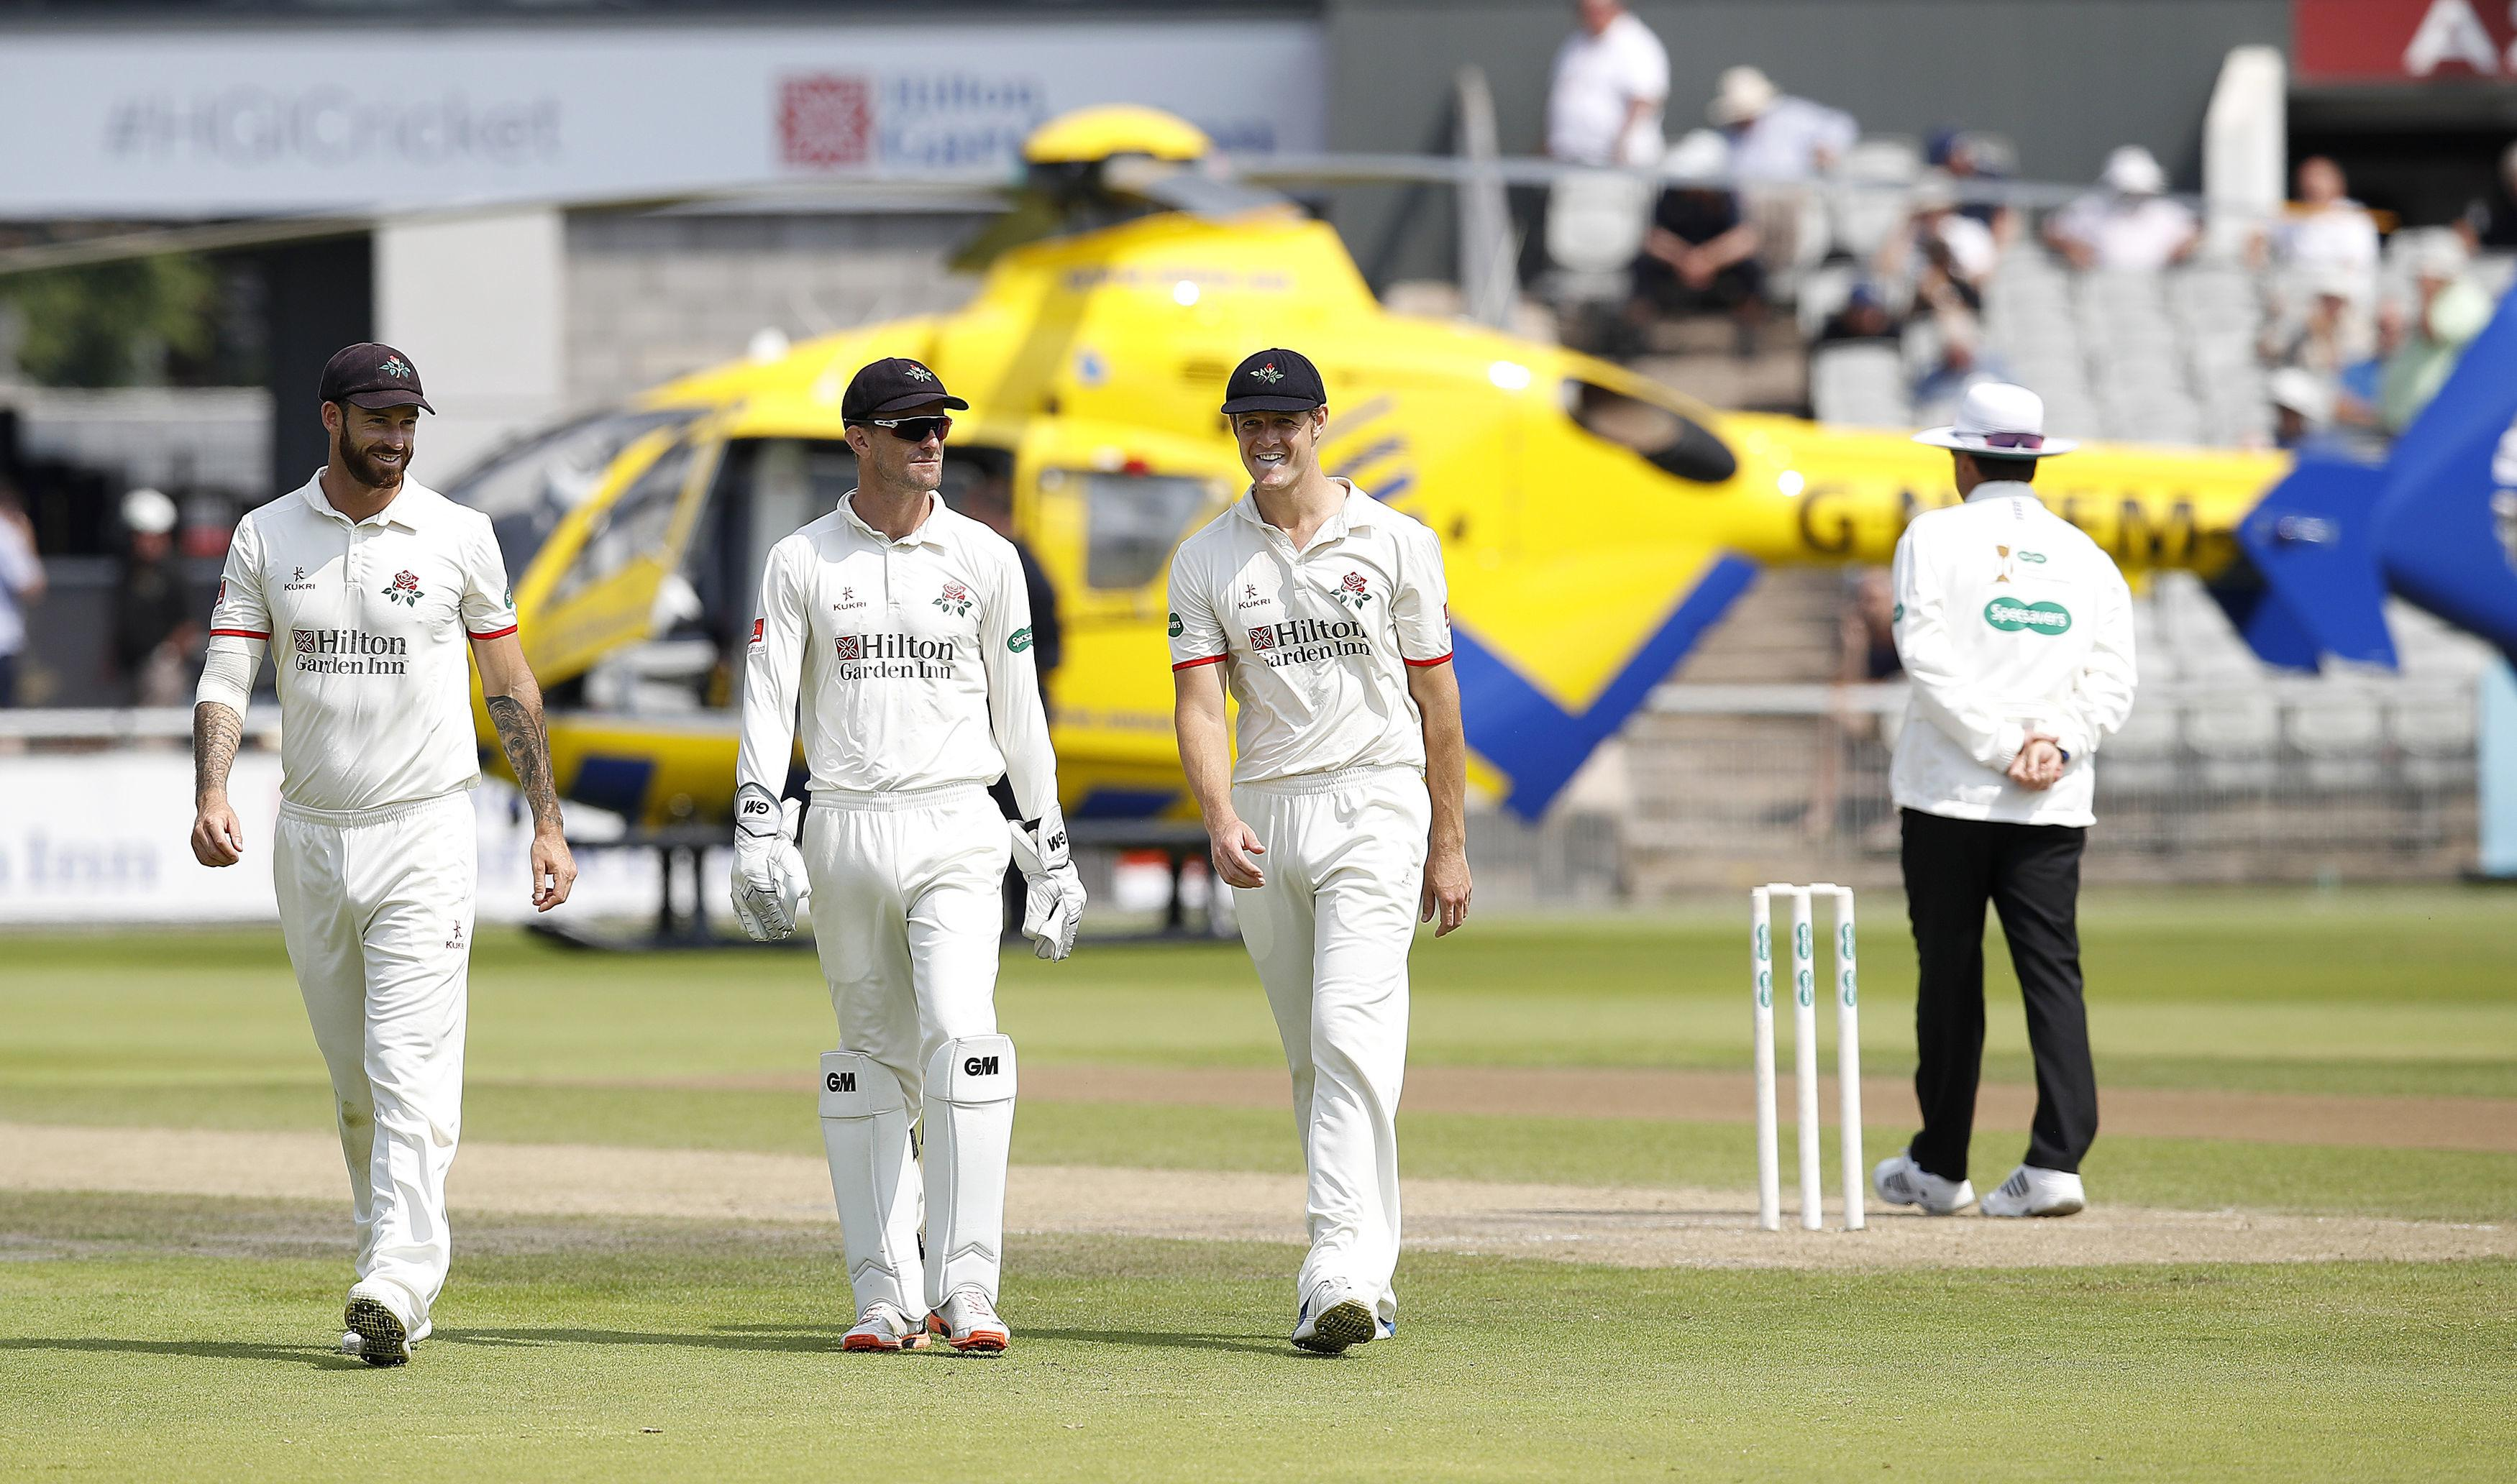 Players were forced to leave the pitch as the air ambulance arrived